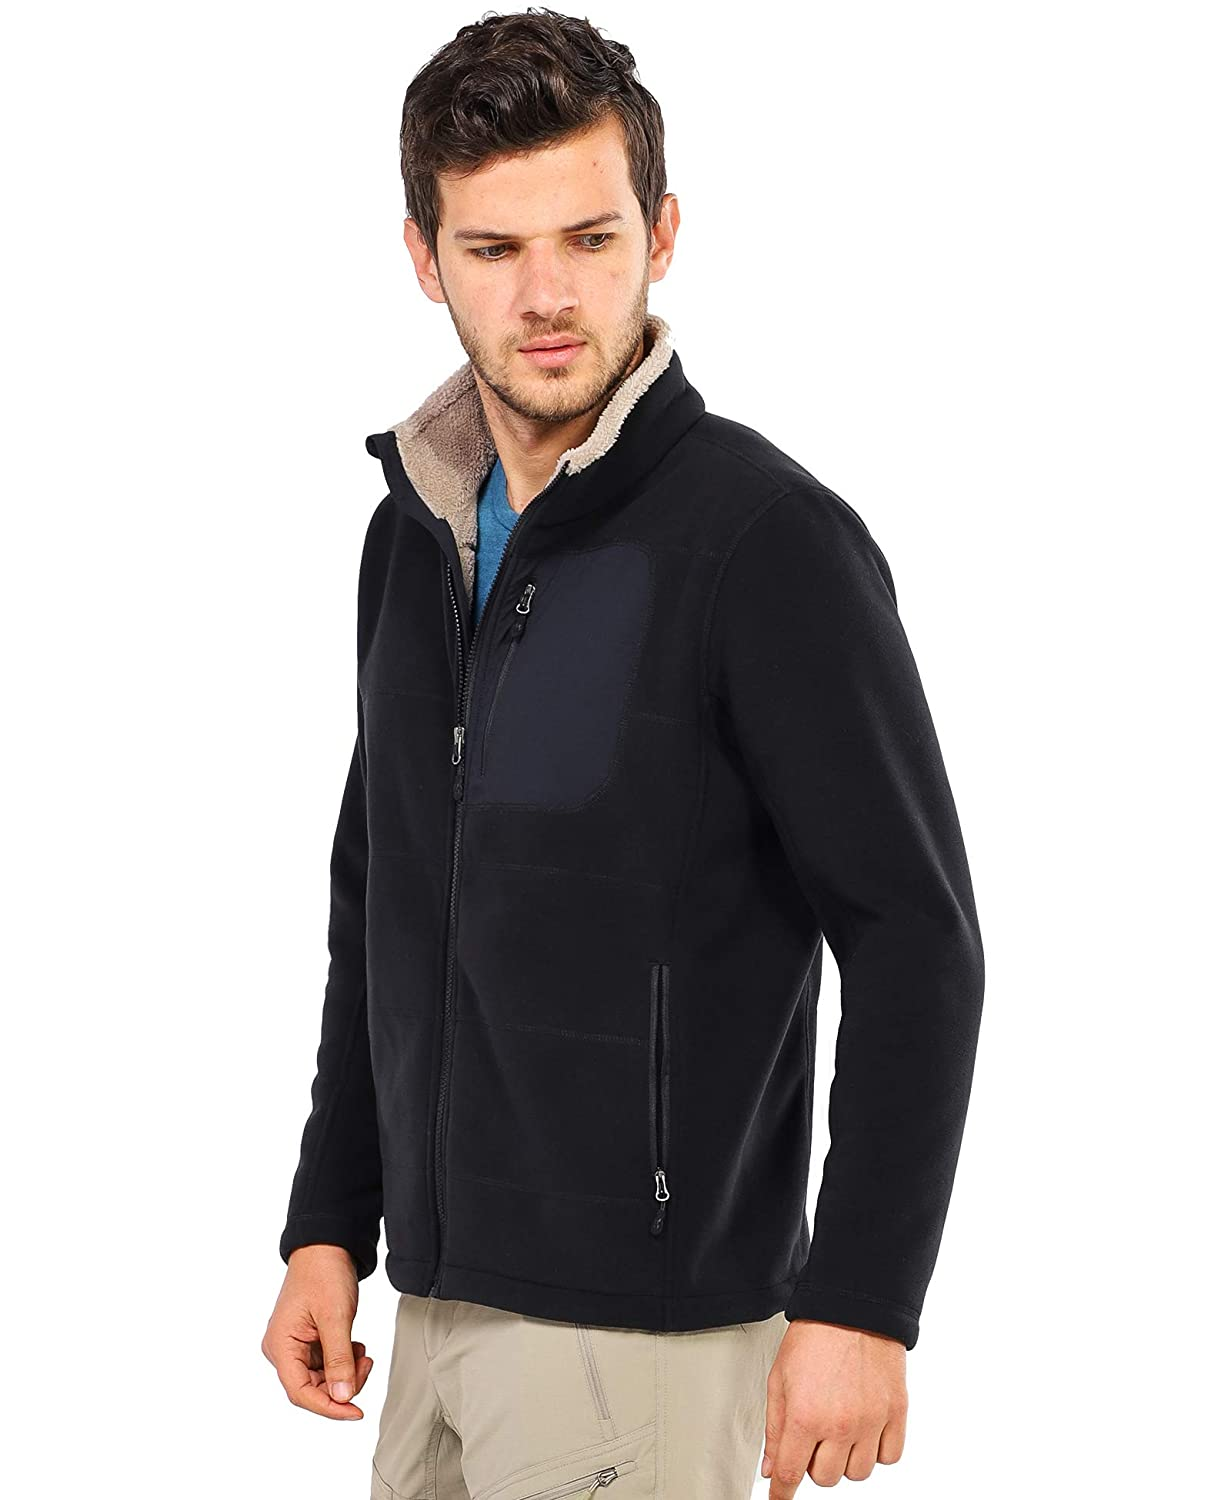 No-Pilling Black MIER Mens Full-Zip Heavyweight Fleece Jacket Thermal Tactical Fleece Outerwear with 5 Pockets